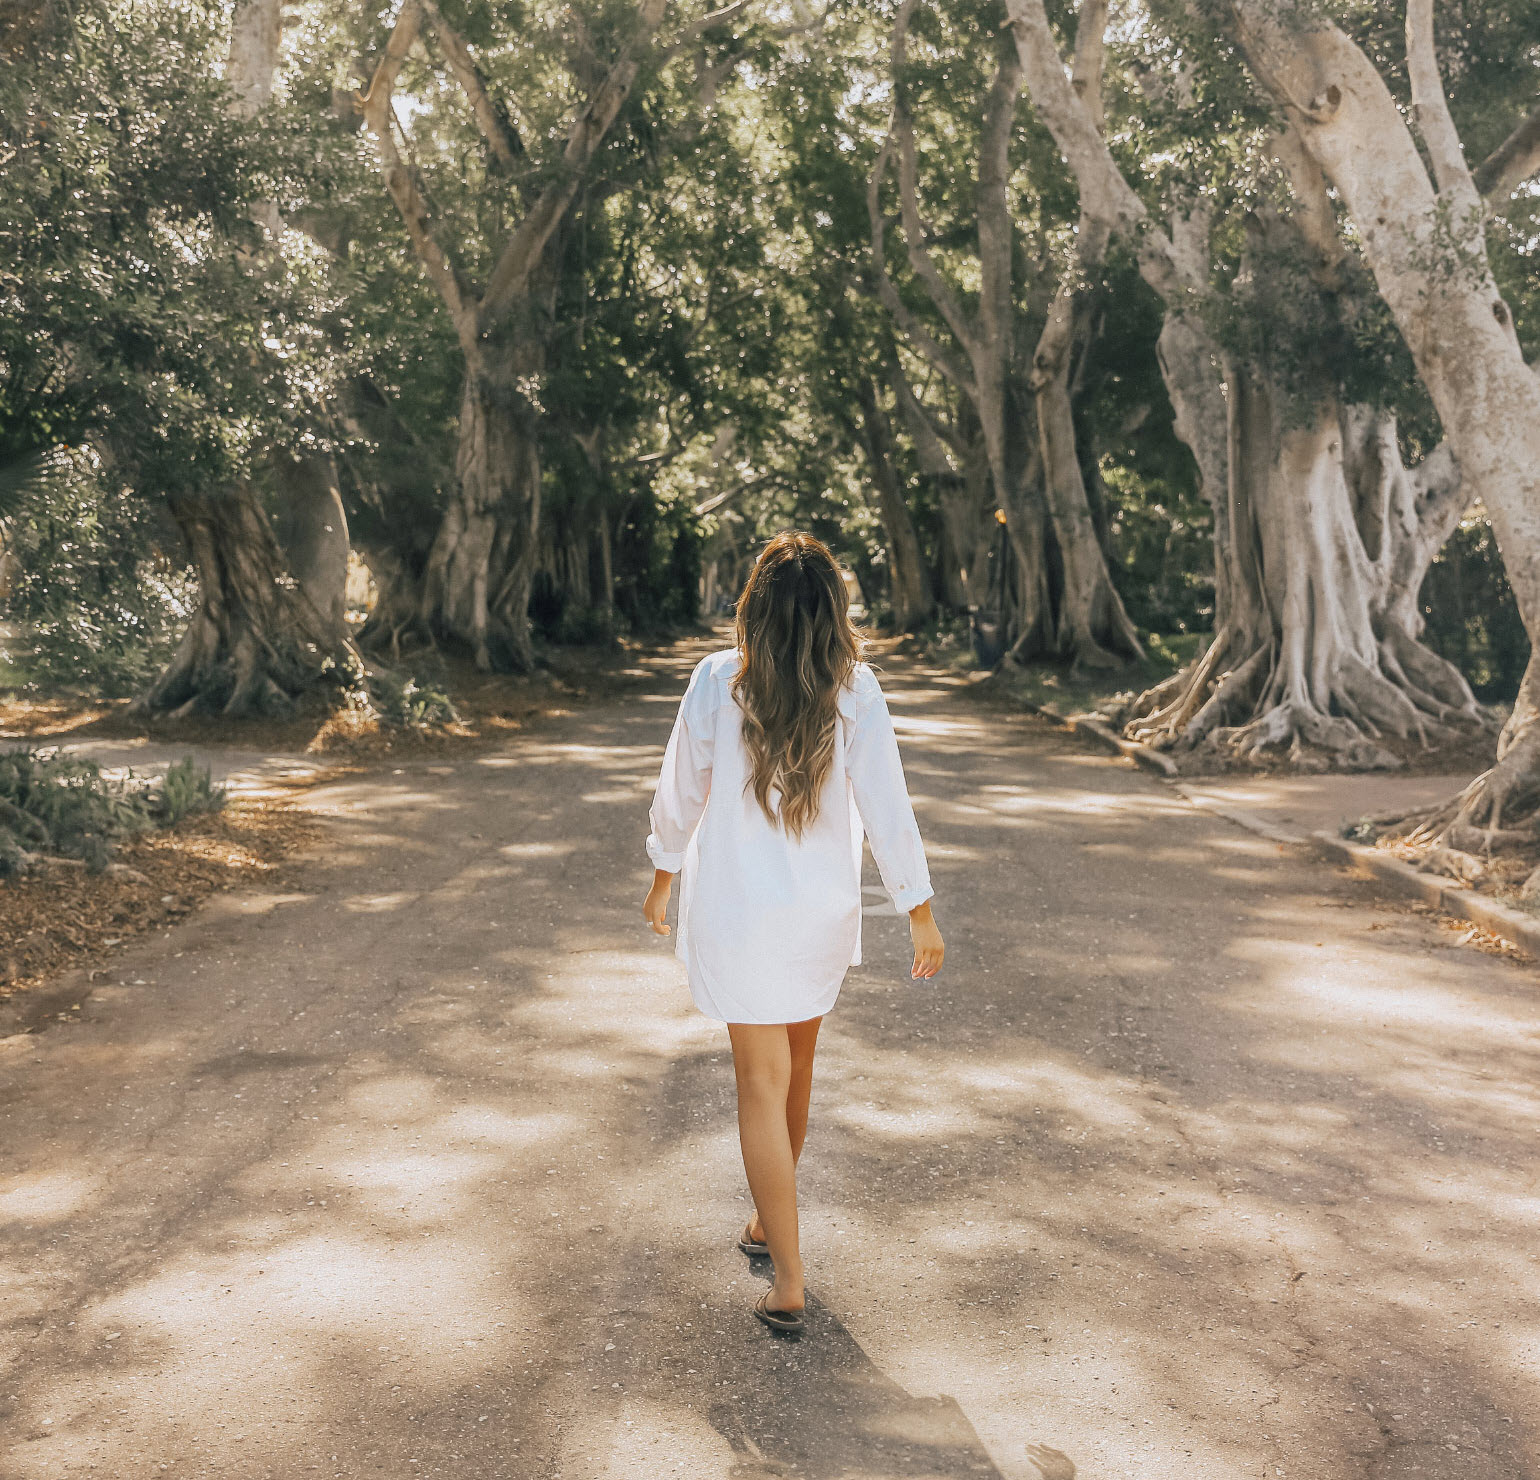 Blogger walking through the banyan trees located in bradenton